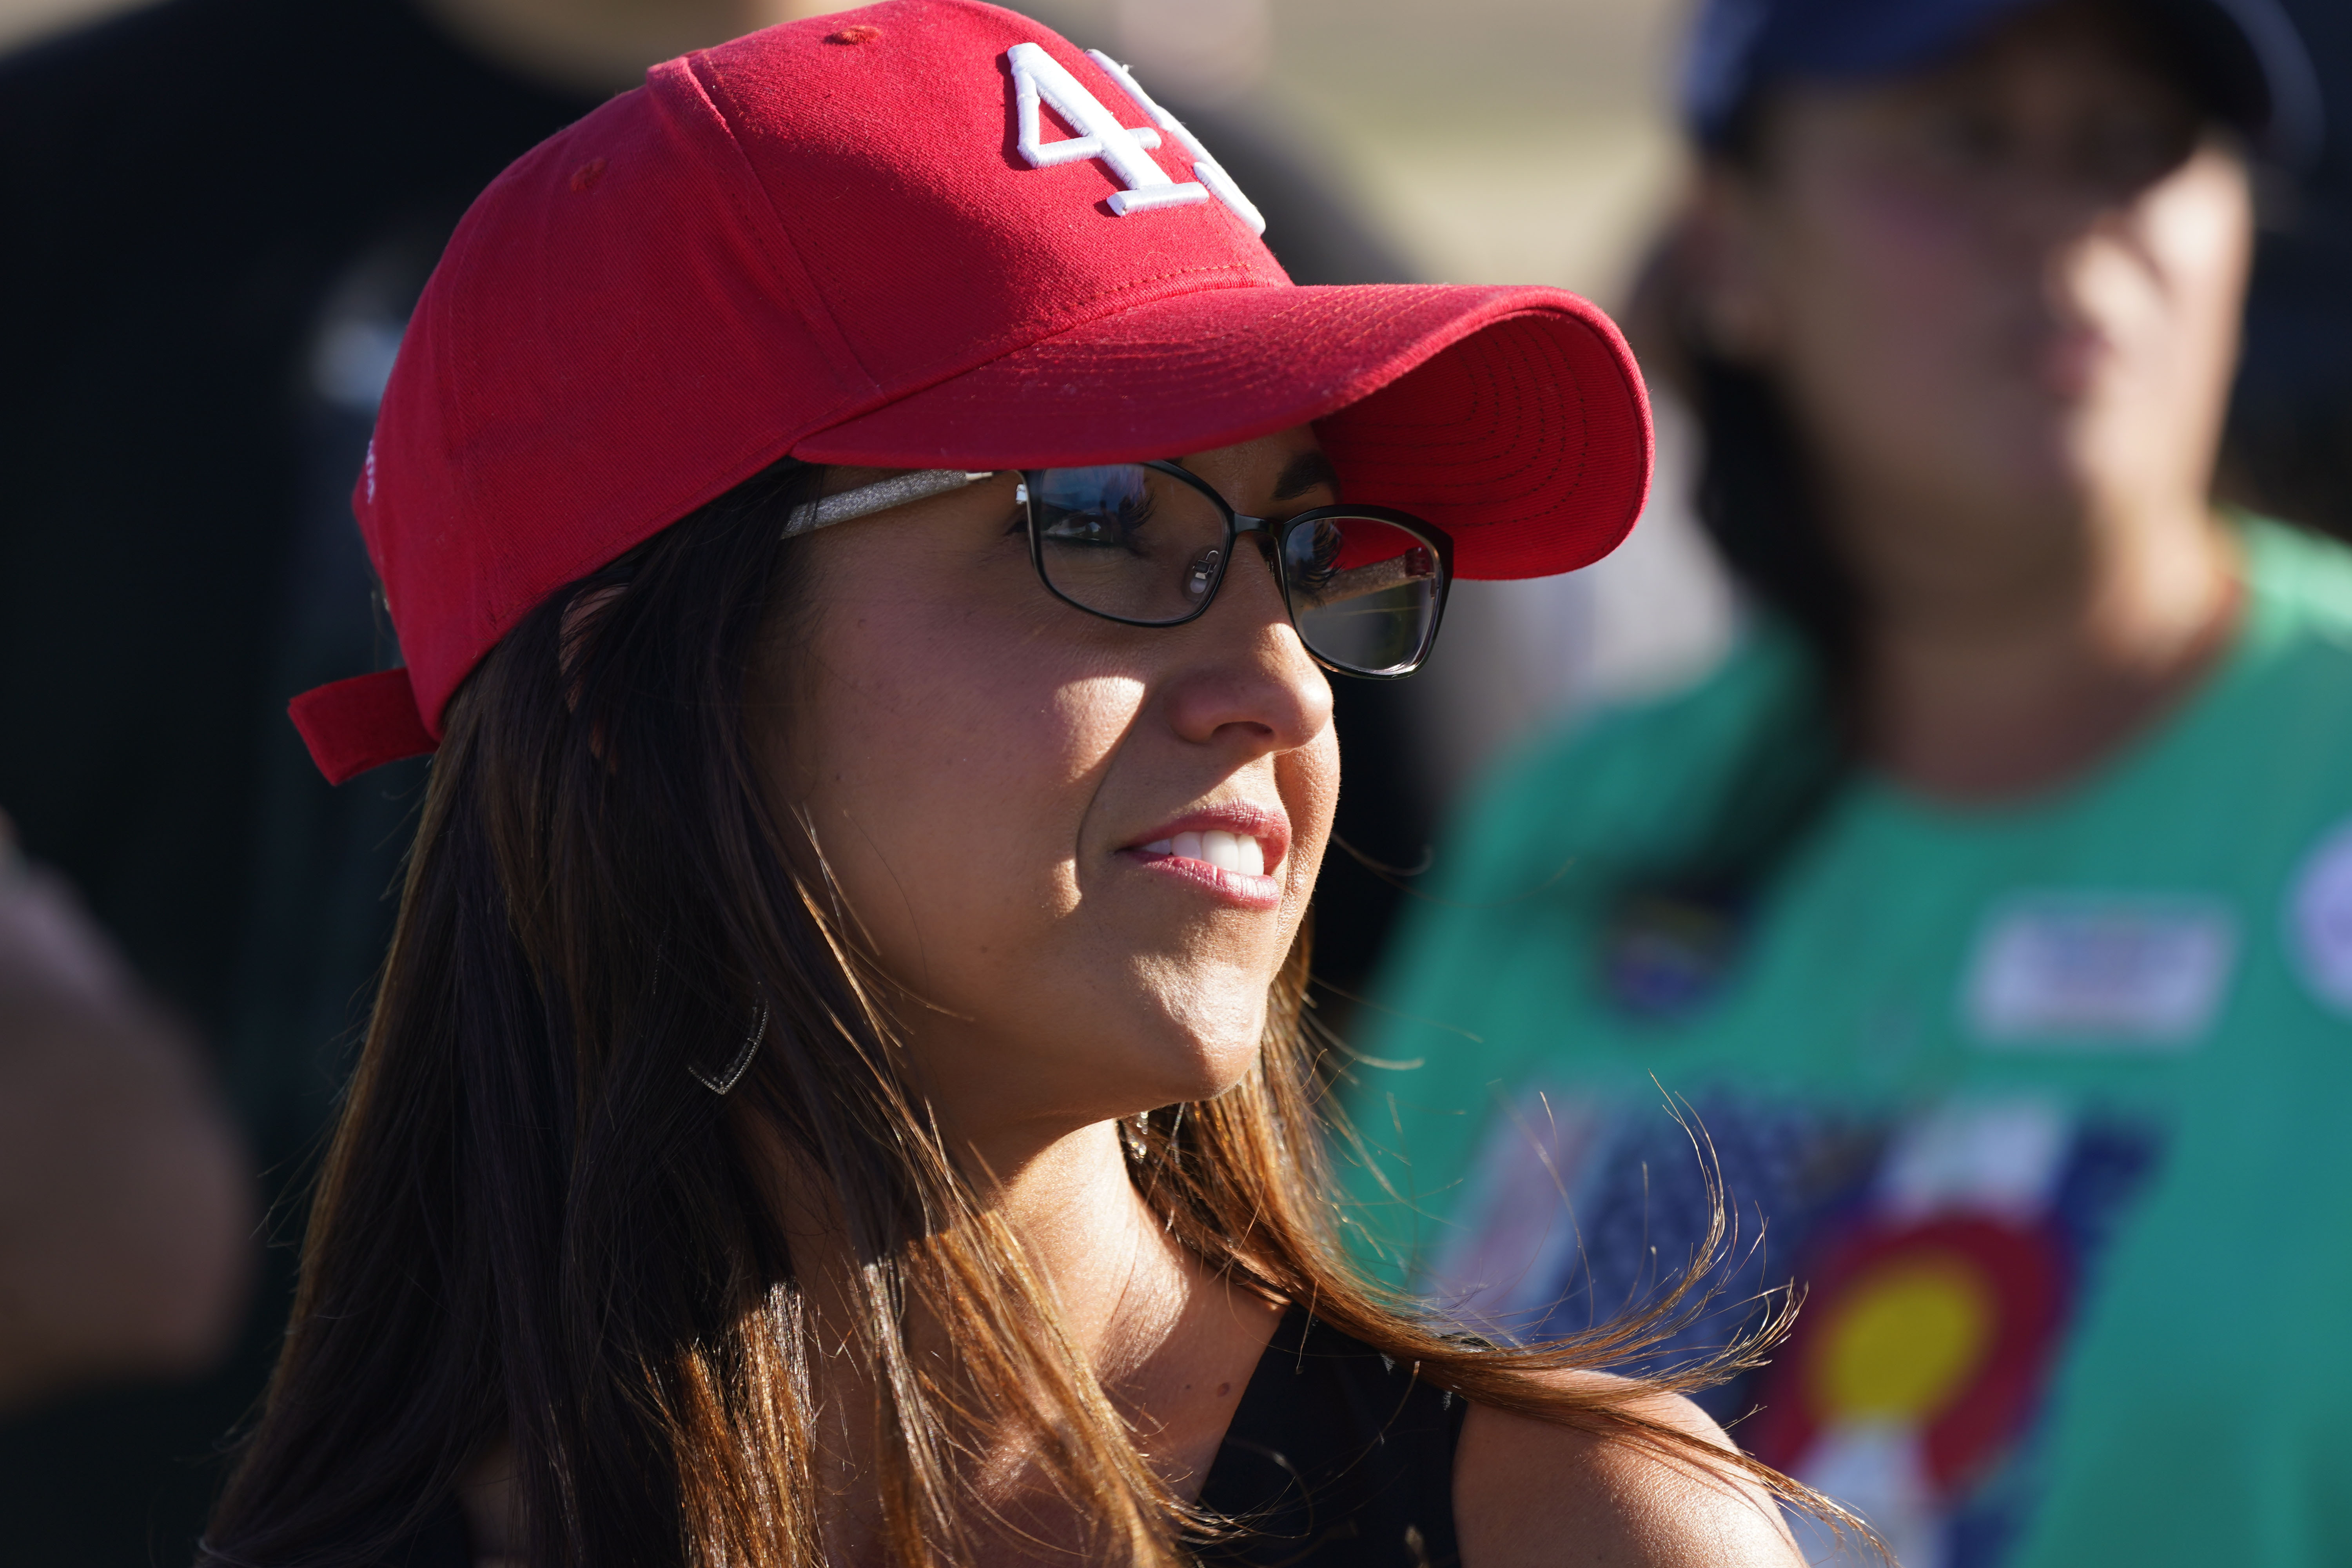 Lauren Boebert, the Republican candidate for the U.S. House of Representatives seat in Colorado's vast 3rd Congressional District, during a freedom cruise staged by her supporters on Friday, September 4, in Pueblo West, Colorado.